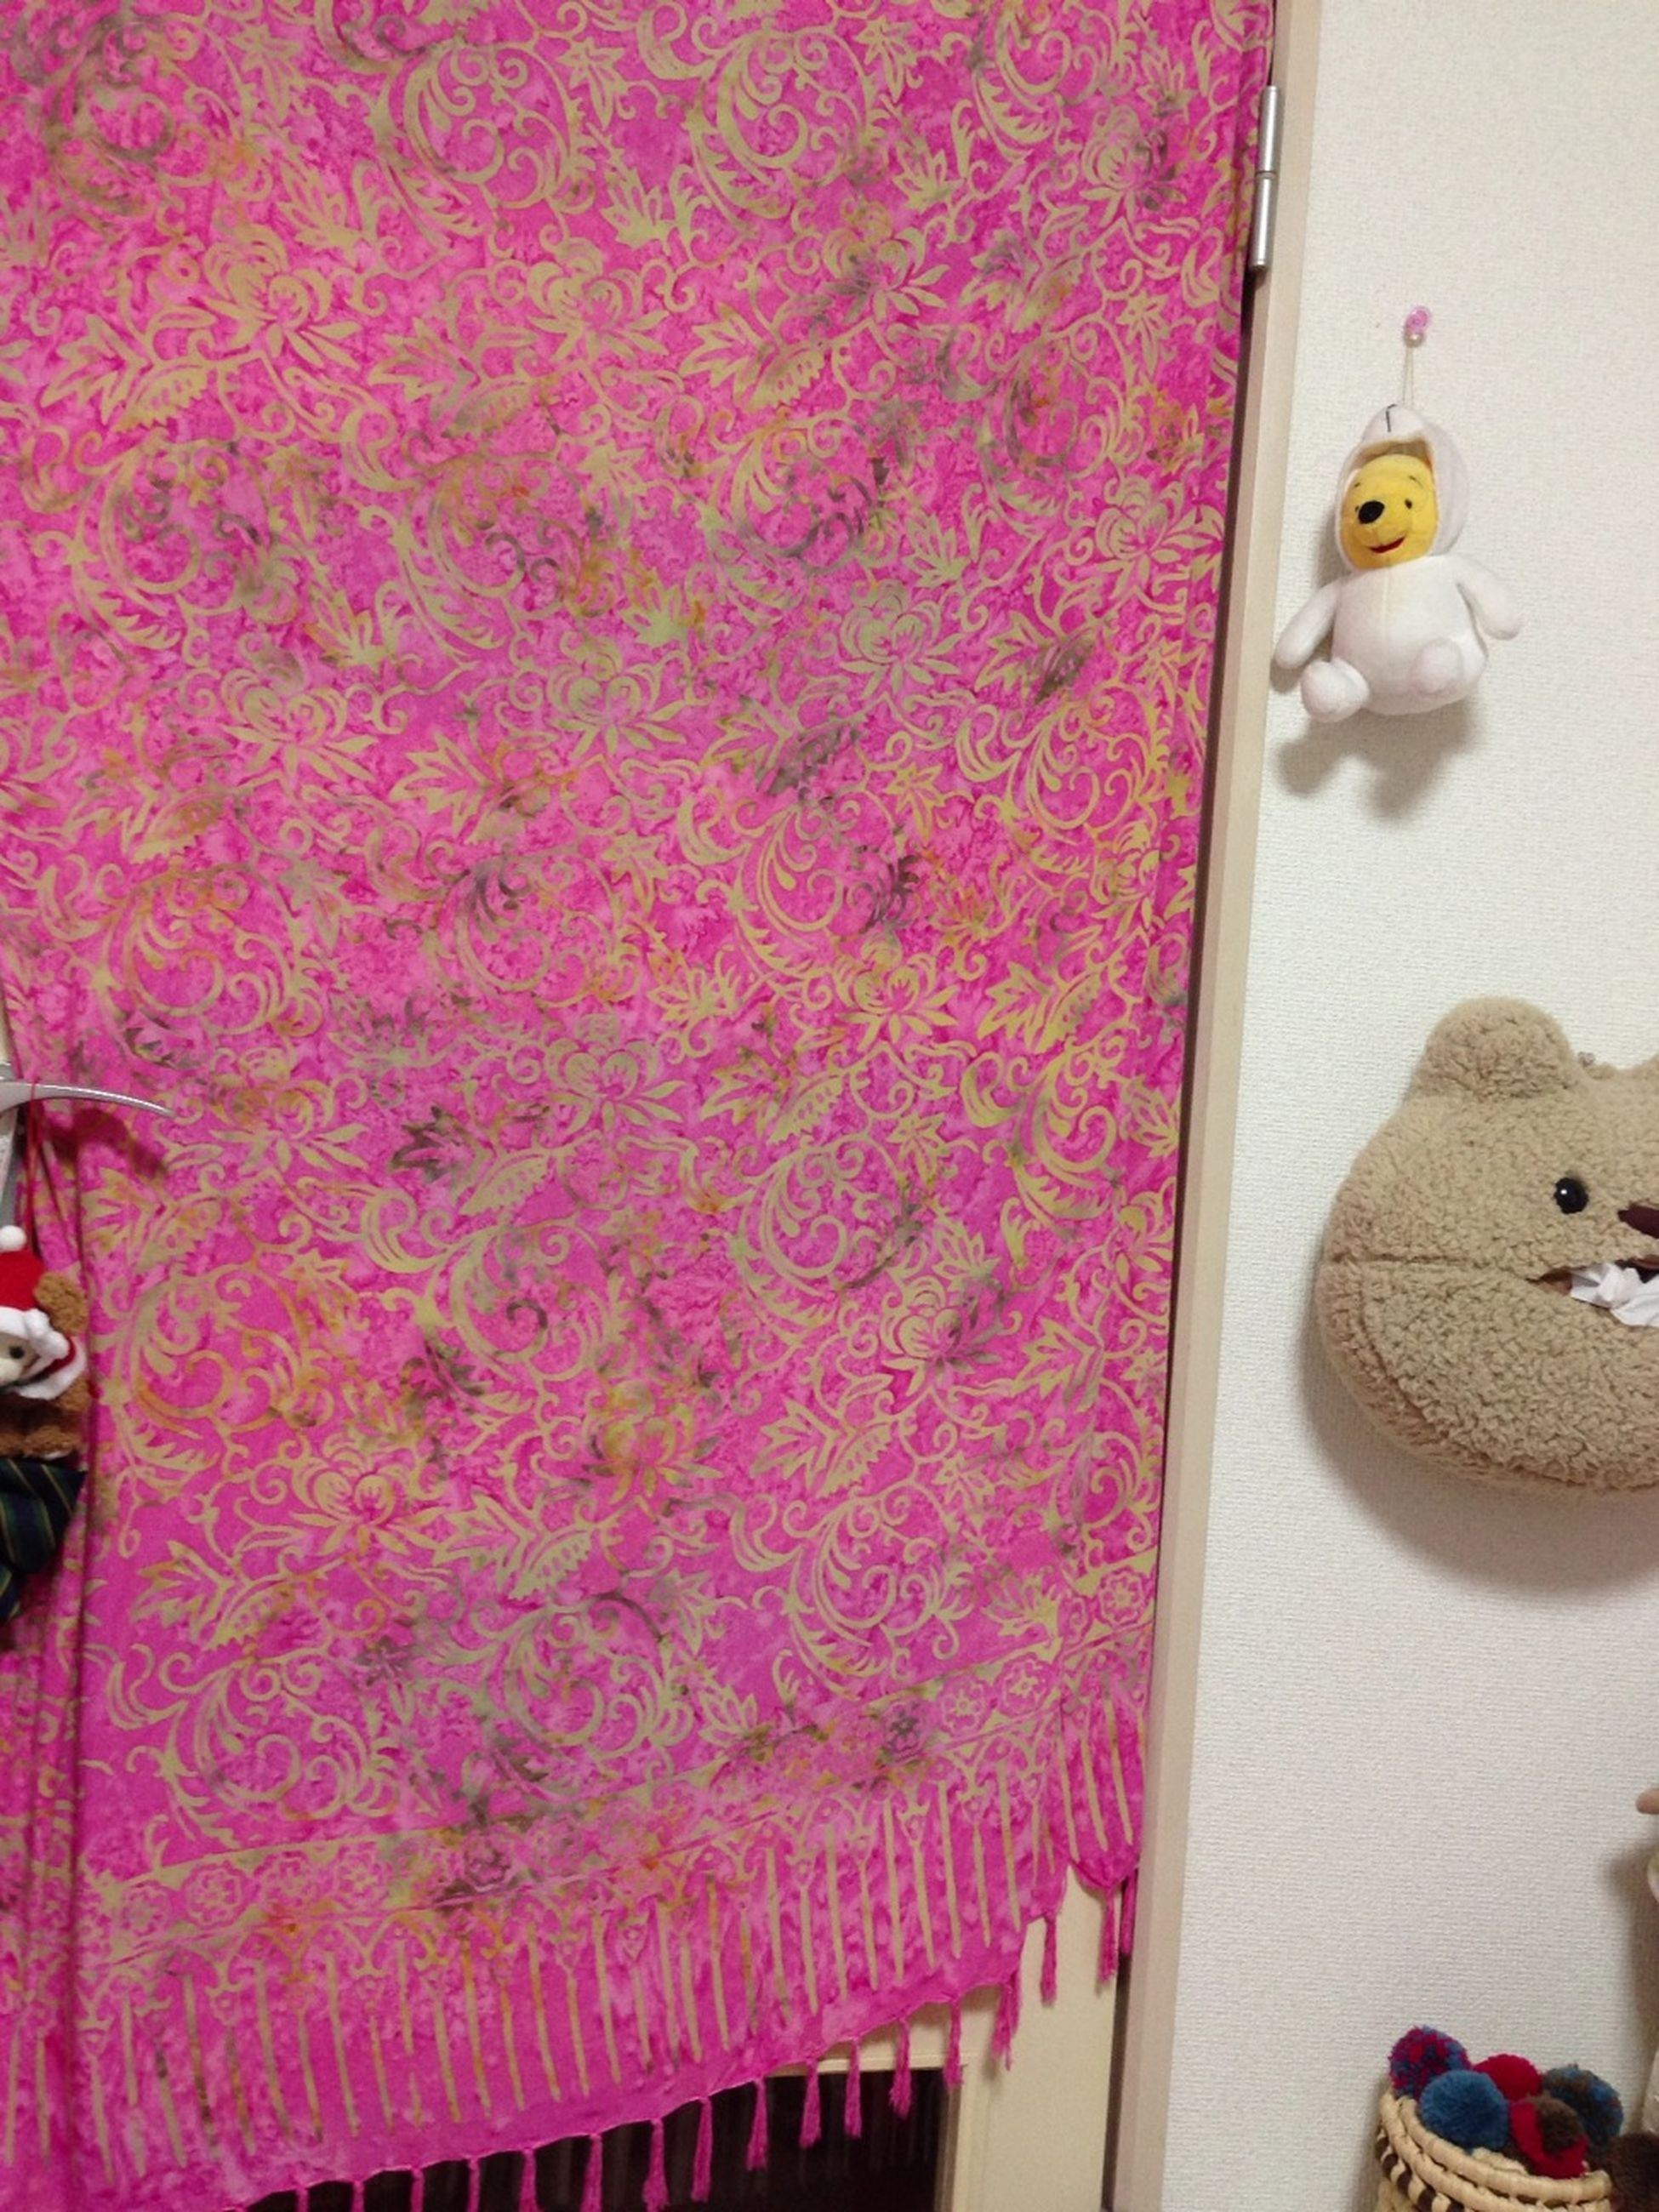 indoors, wall - building feature, multi colored, variation, toy, still life, home interior, no people, high angle view, animal representation, table, textile, pink color, red, hanging, close-up, art and craft, metal, fabric, decoration